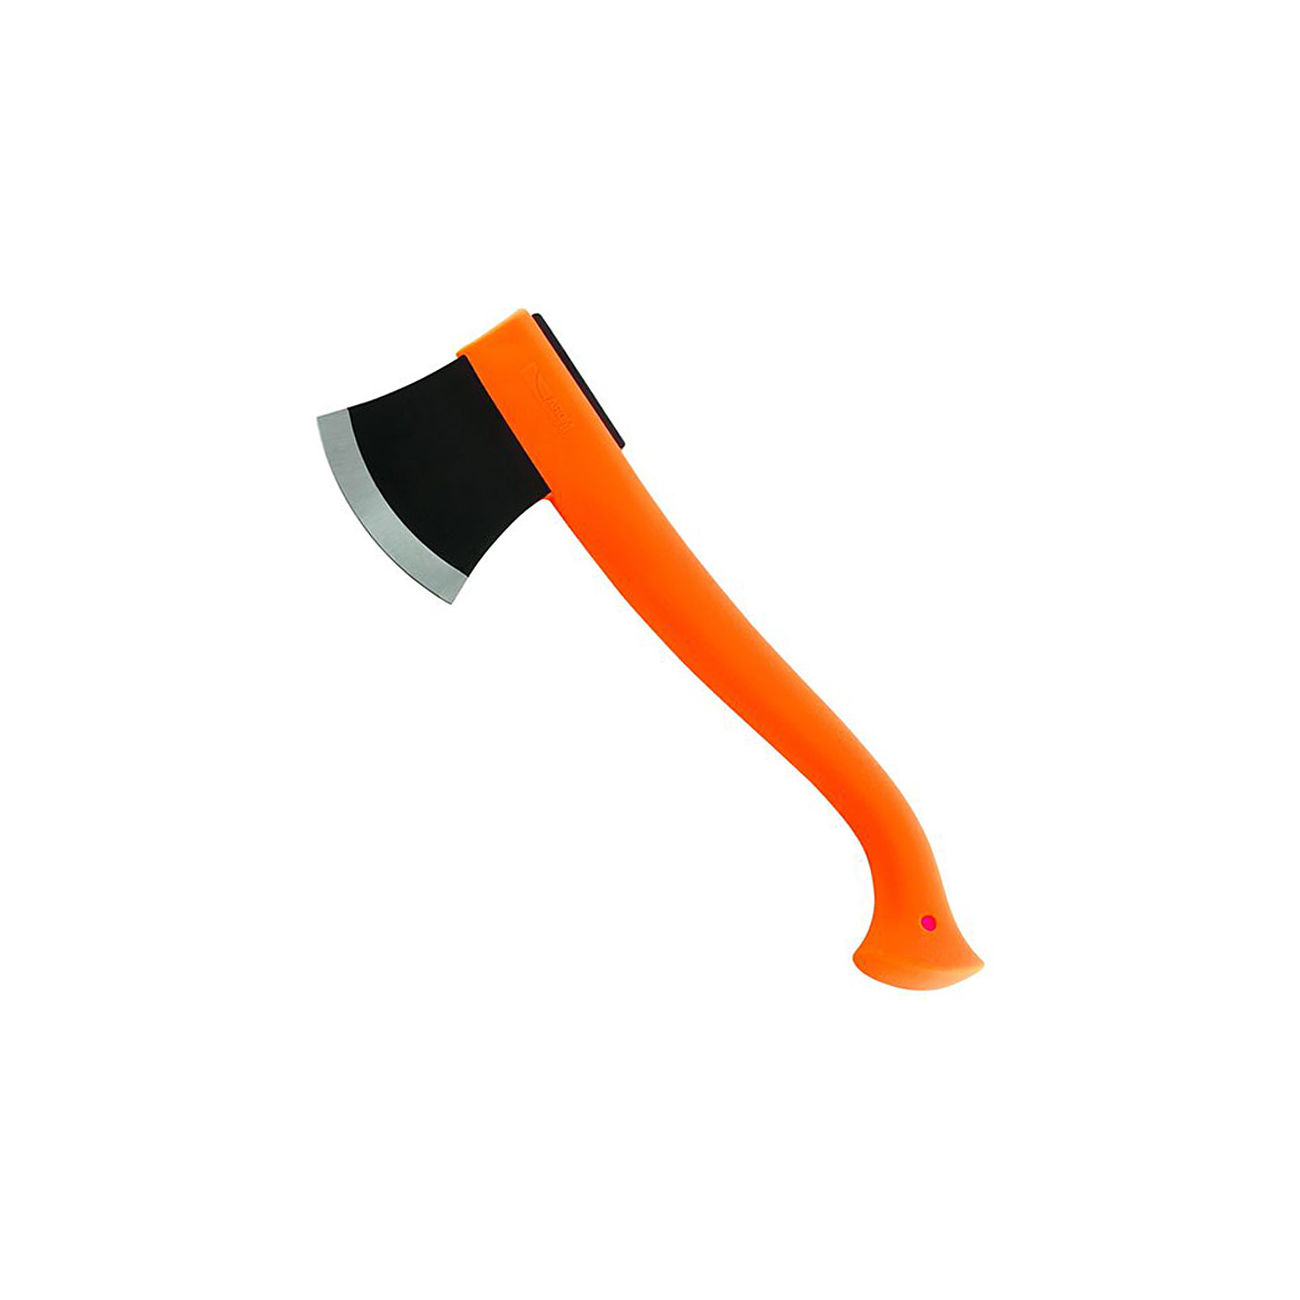 Mora Beil Carbon Stahl orange 0